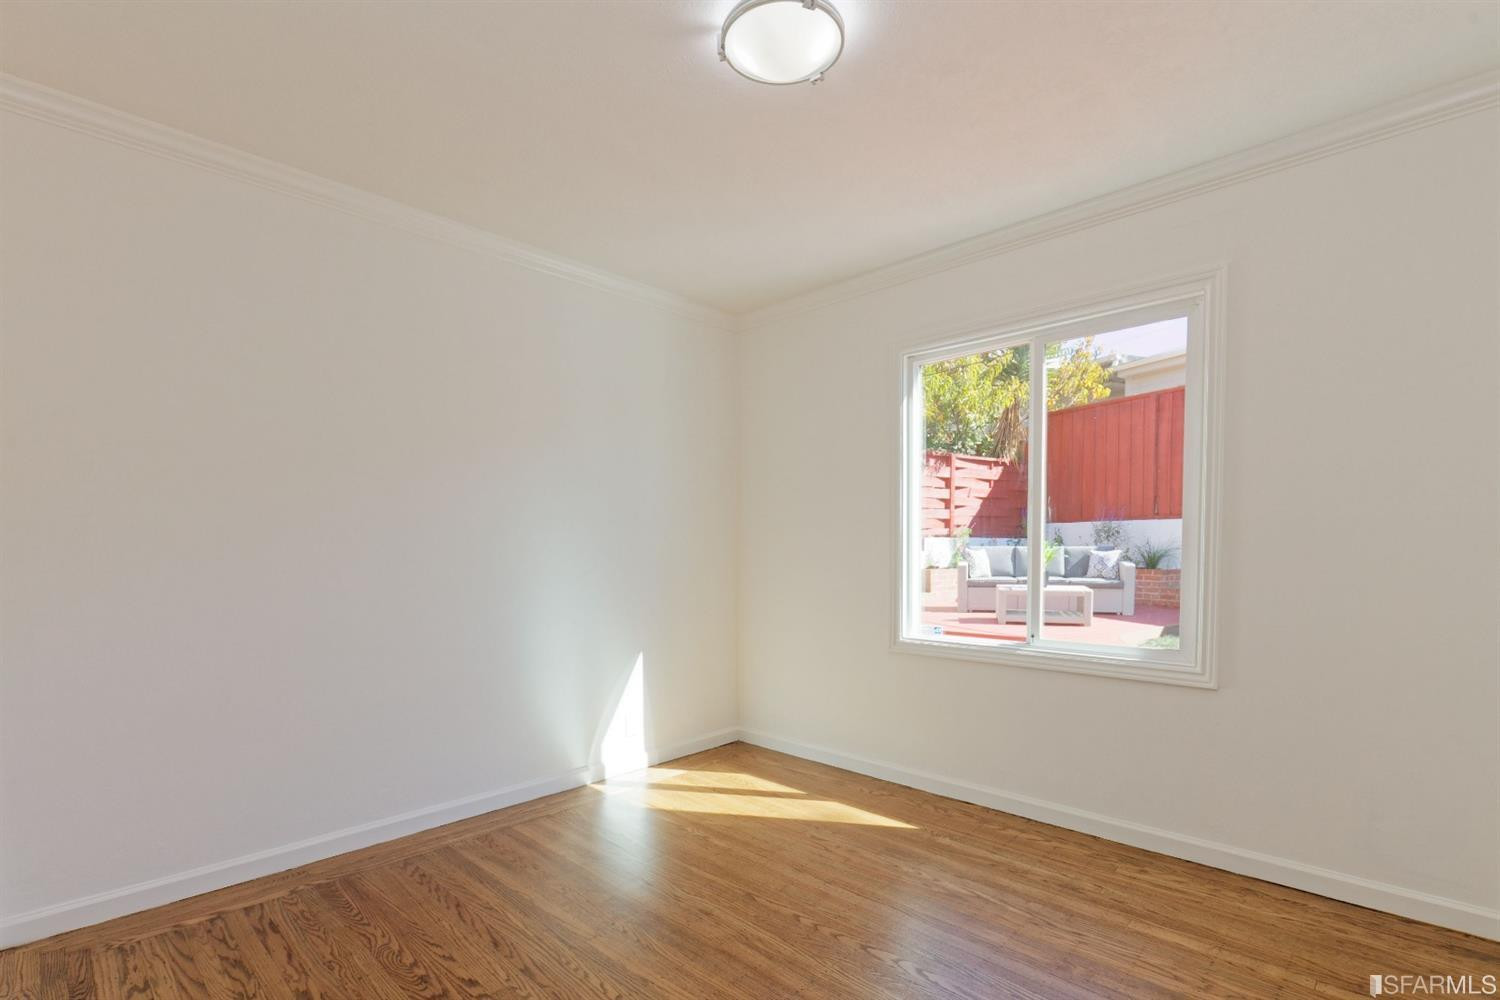 hardwood floor refinishing santa barbara of homes for sale in south san francisco sonny chan sequoia real estate with regard to original 28818950274130354